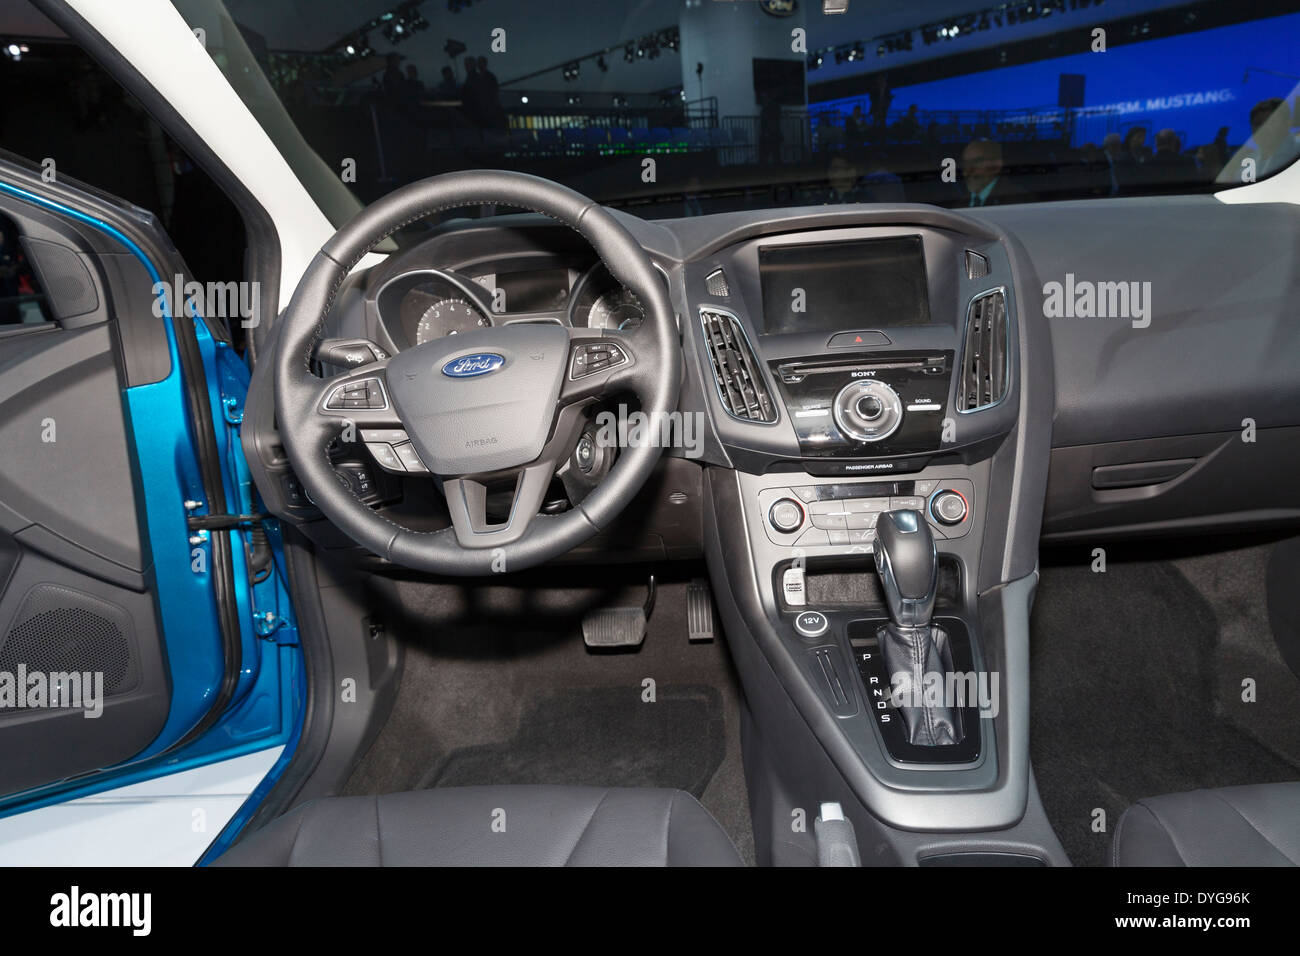 New York Ny April 16 2014 Interior Design Of Ford Focus Edition